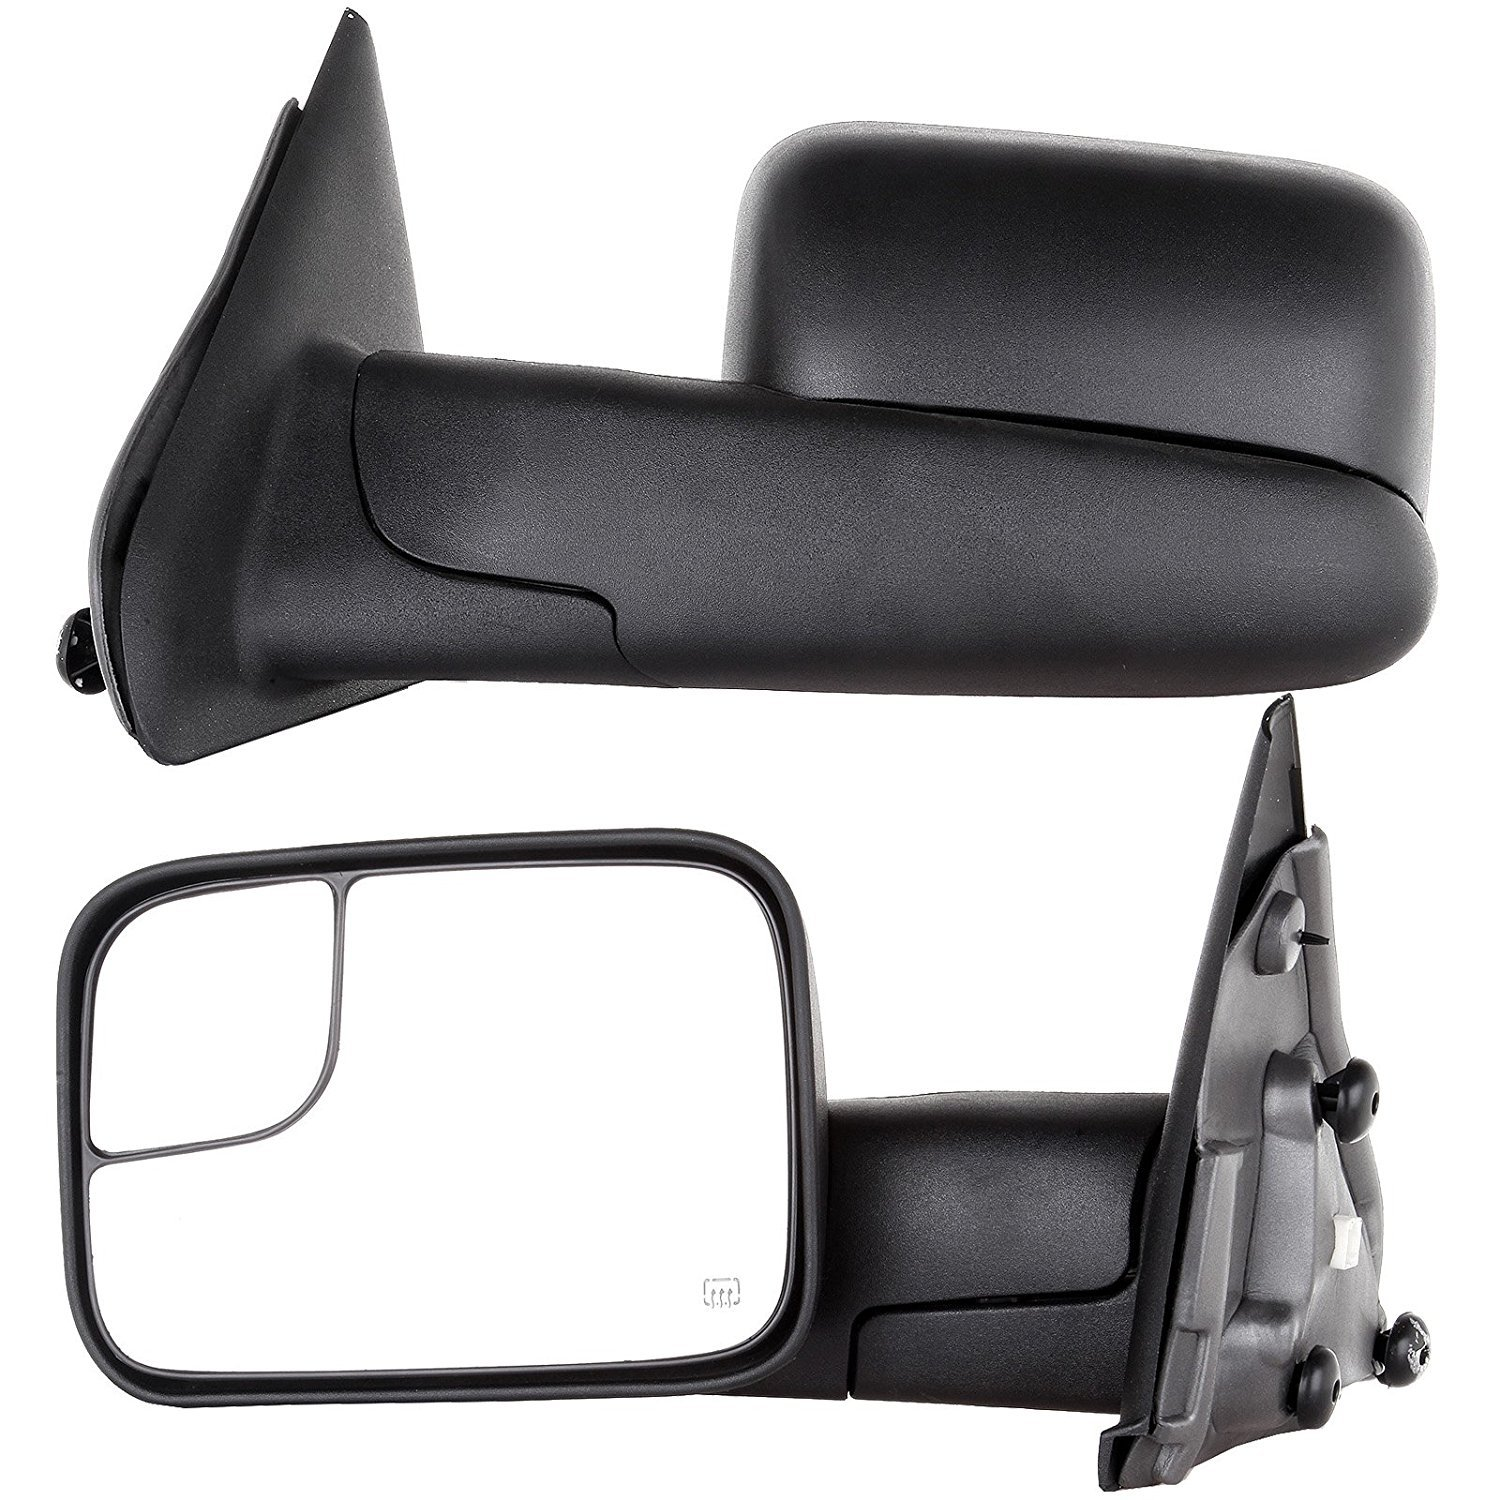 APA Dodge Ram 1500 2500 3500 2002 - 2009 Power Heated Towing Tow Mirror Pair by Auto Parts Avenue